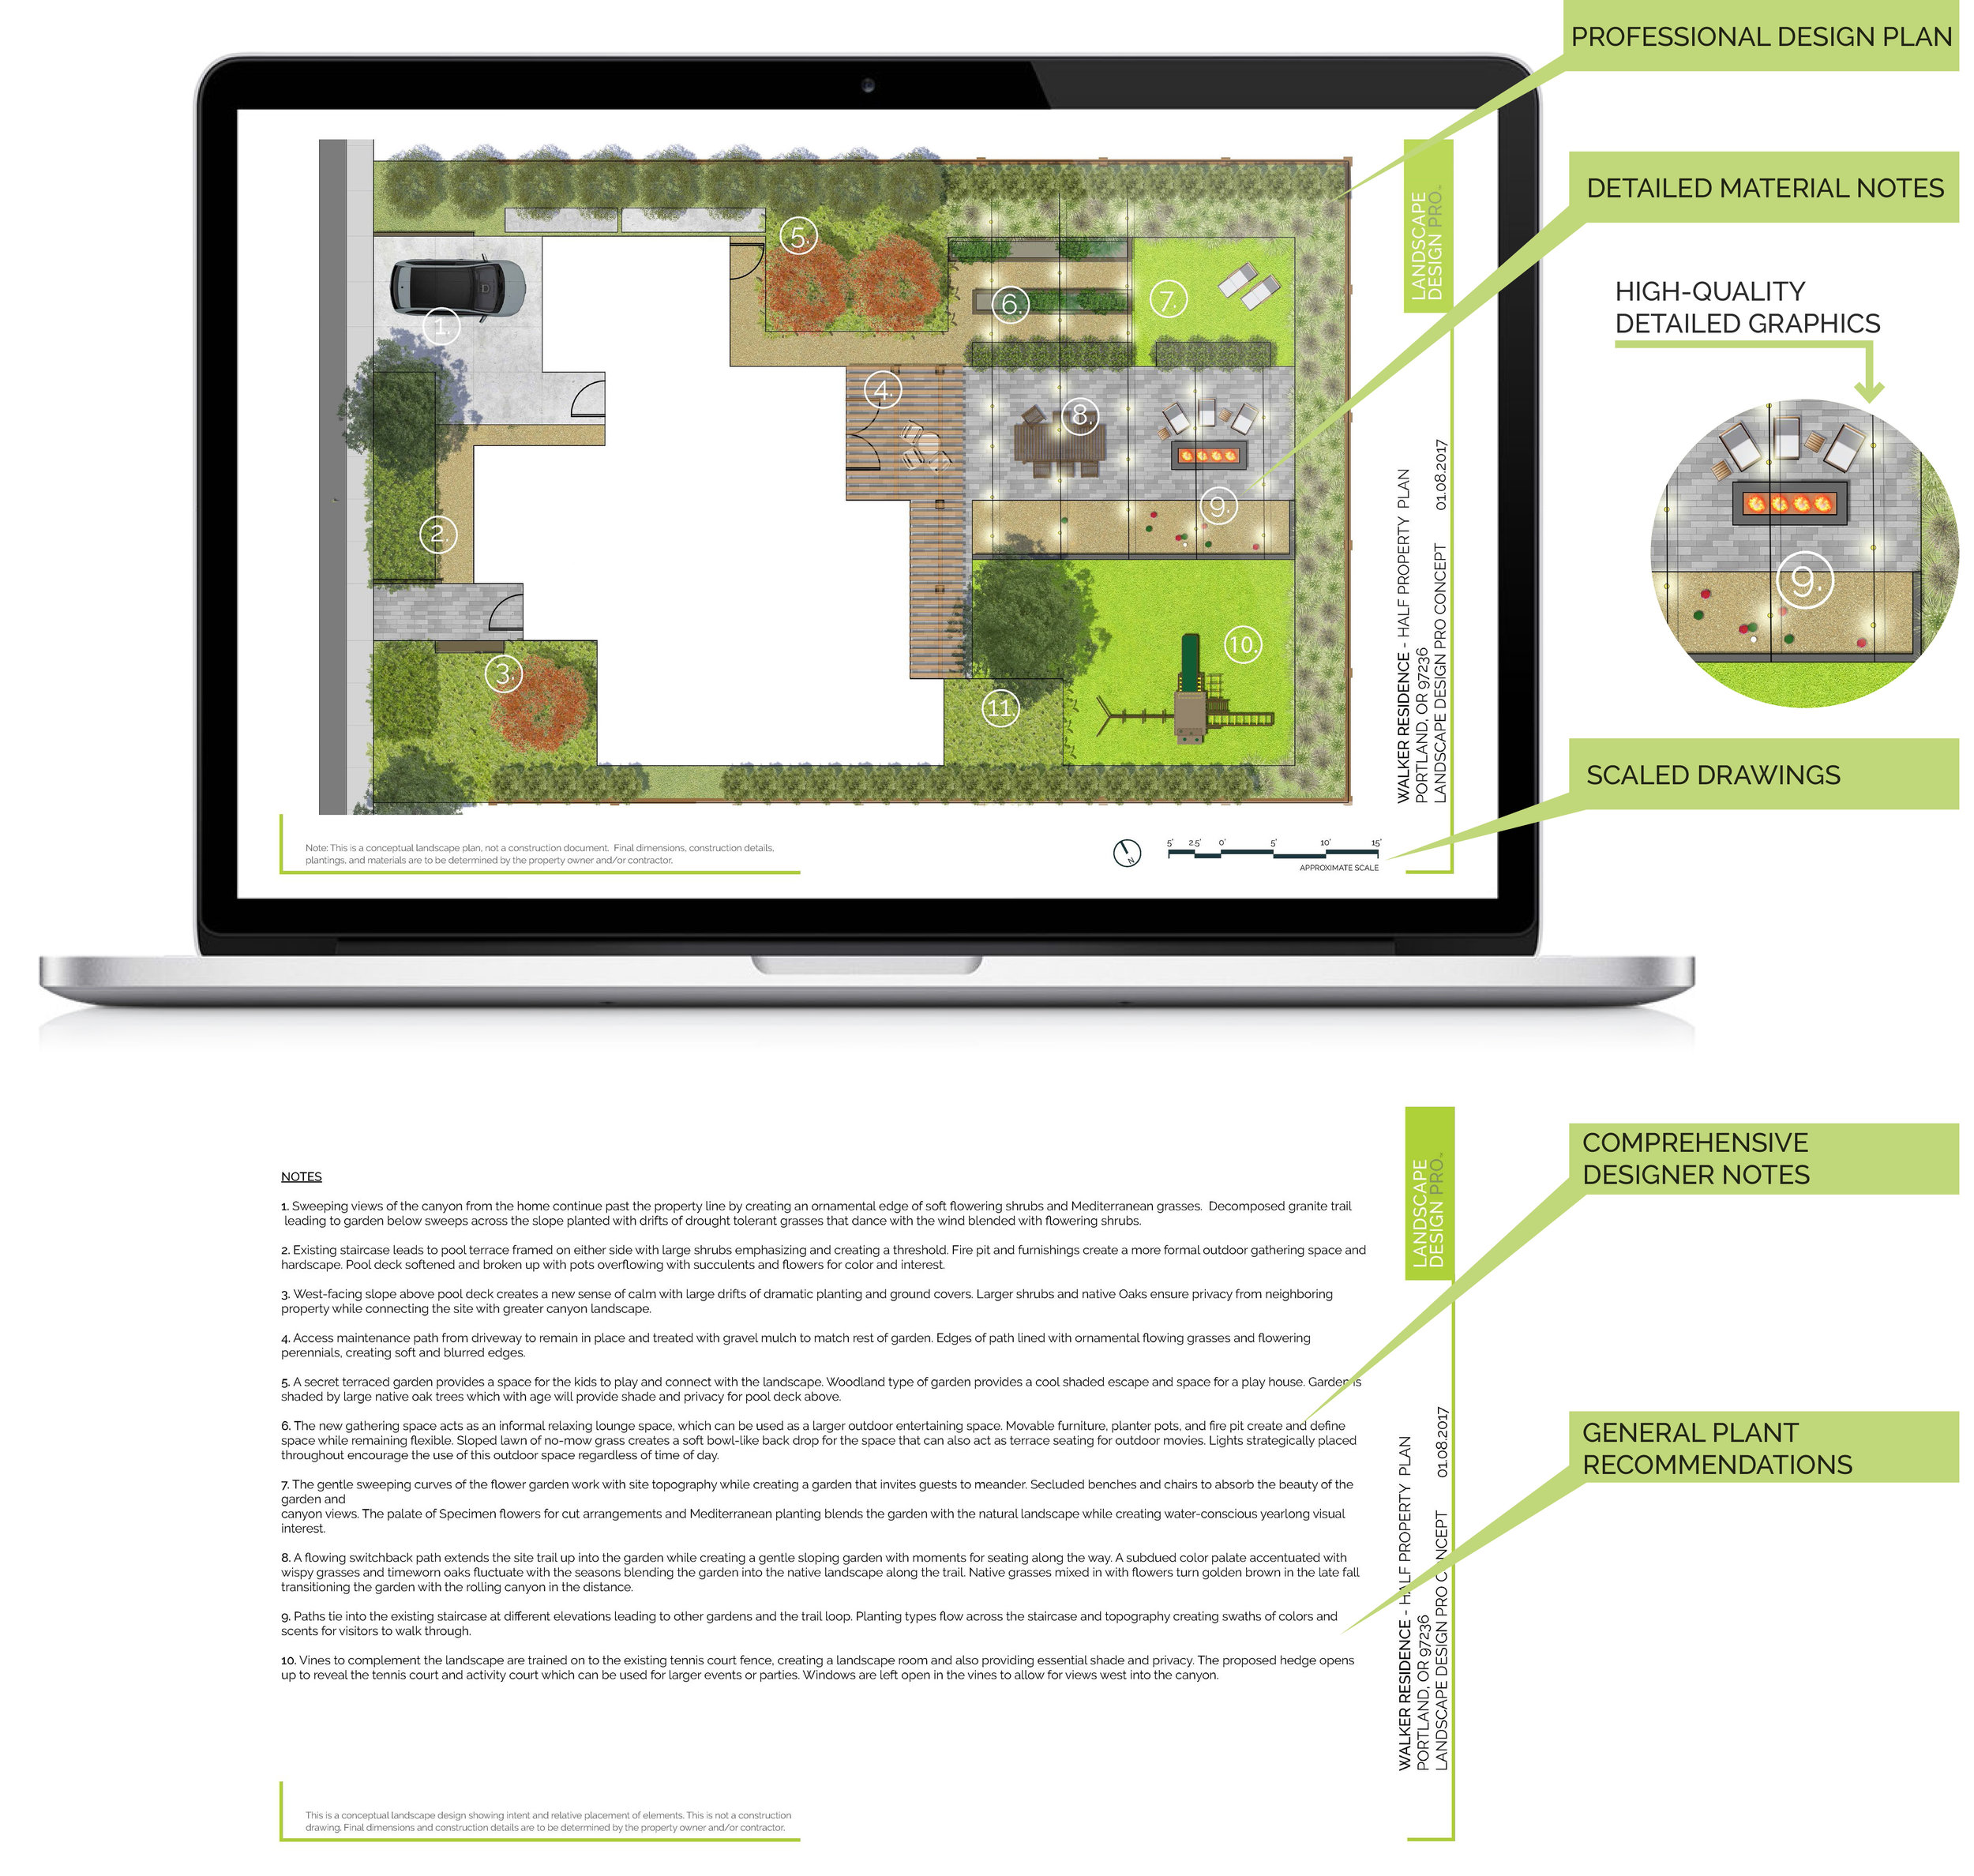 Professional Designs - With Think Outside, you receive more than just pretty images to inspire – you are provided a professional concept plan to create your dream landscape. Your designer will eliminate all the guesswork in your landscape decisions and create a design with detailed notes explaining the layout, materials, and planting recommendations.